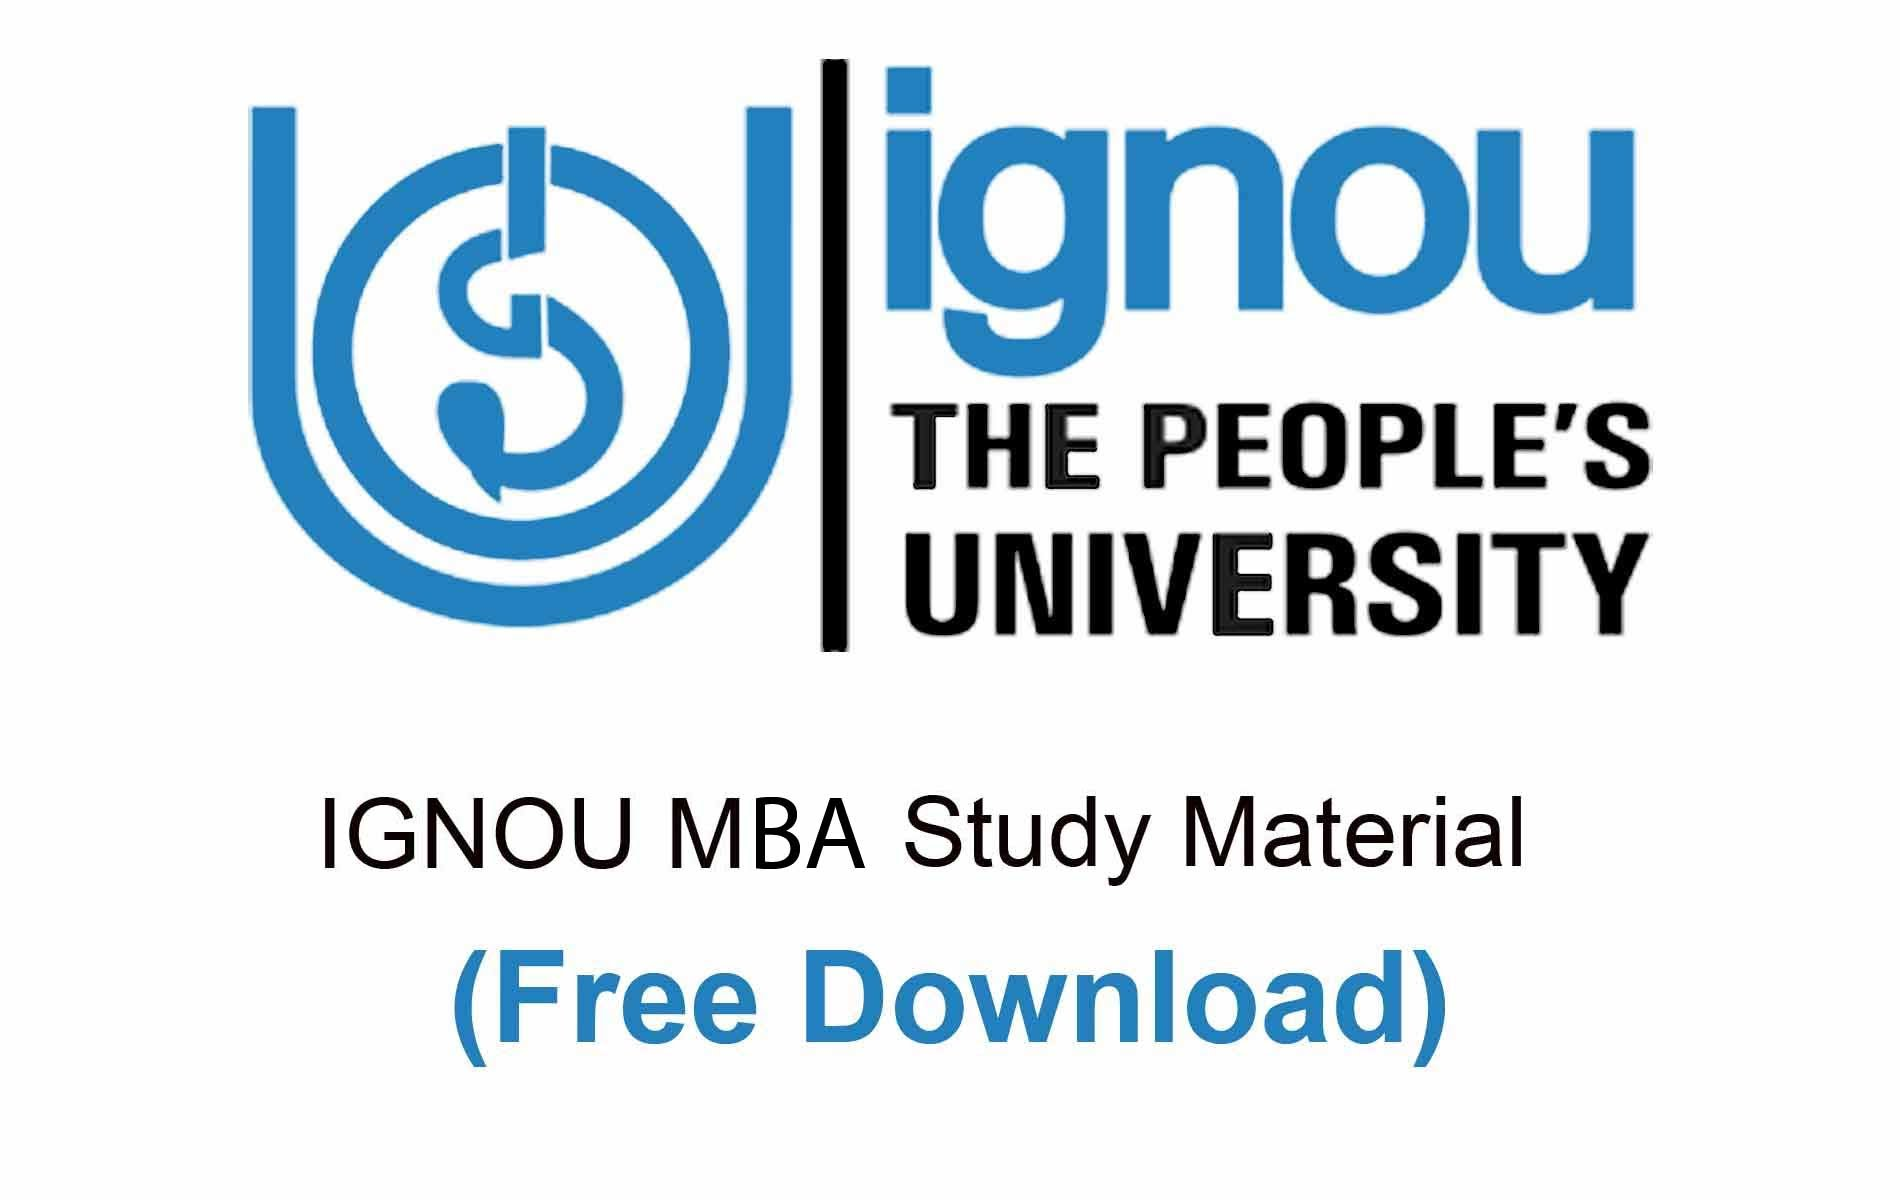 Ignou MBA Study Material free download